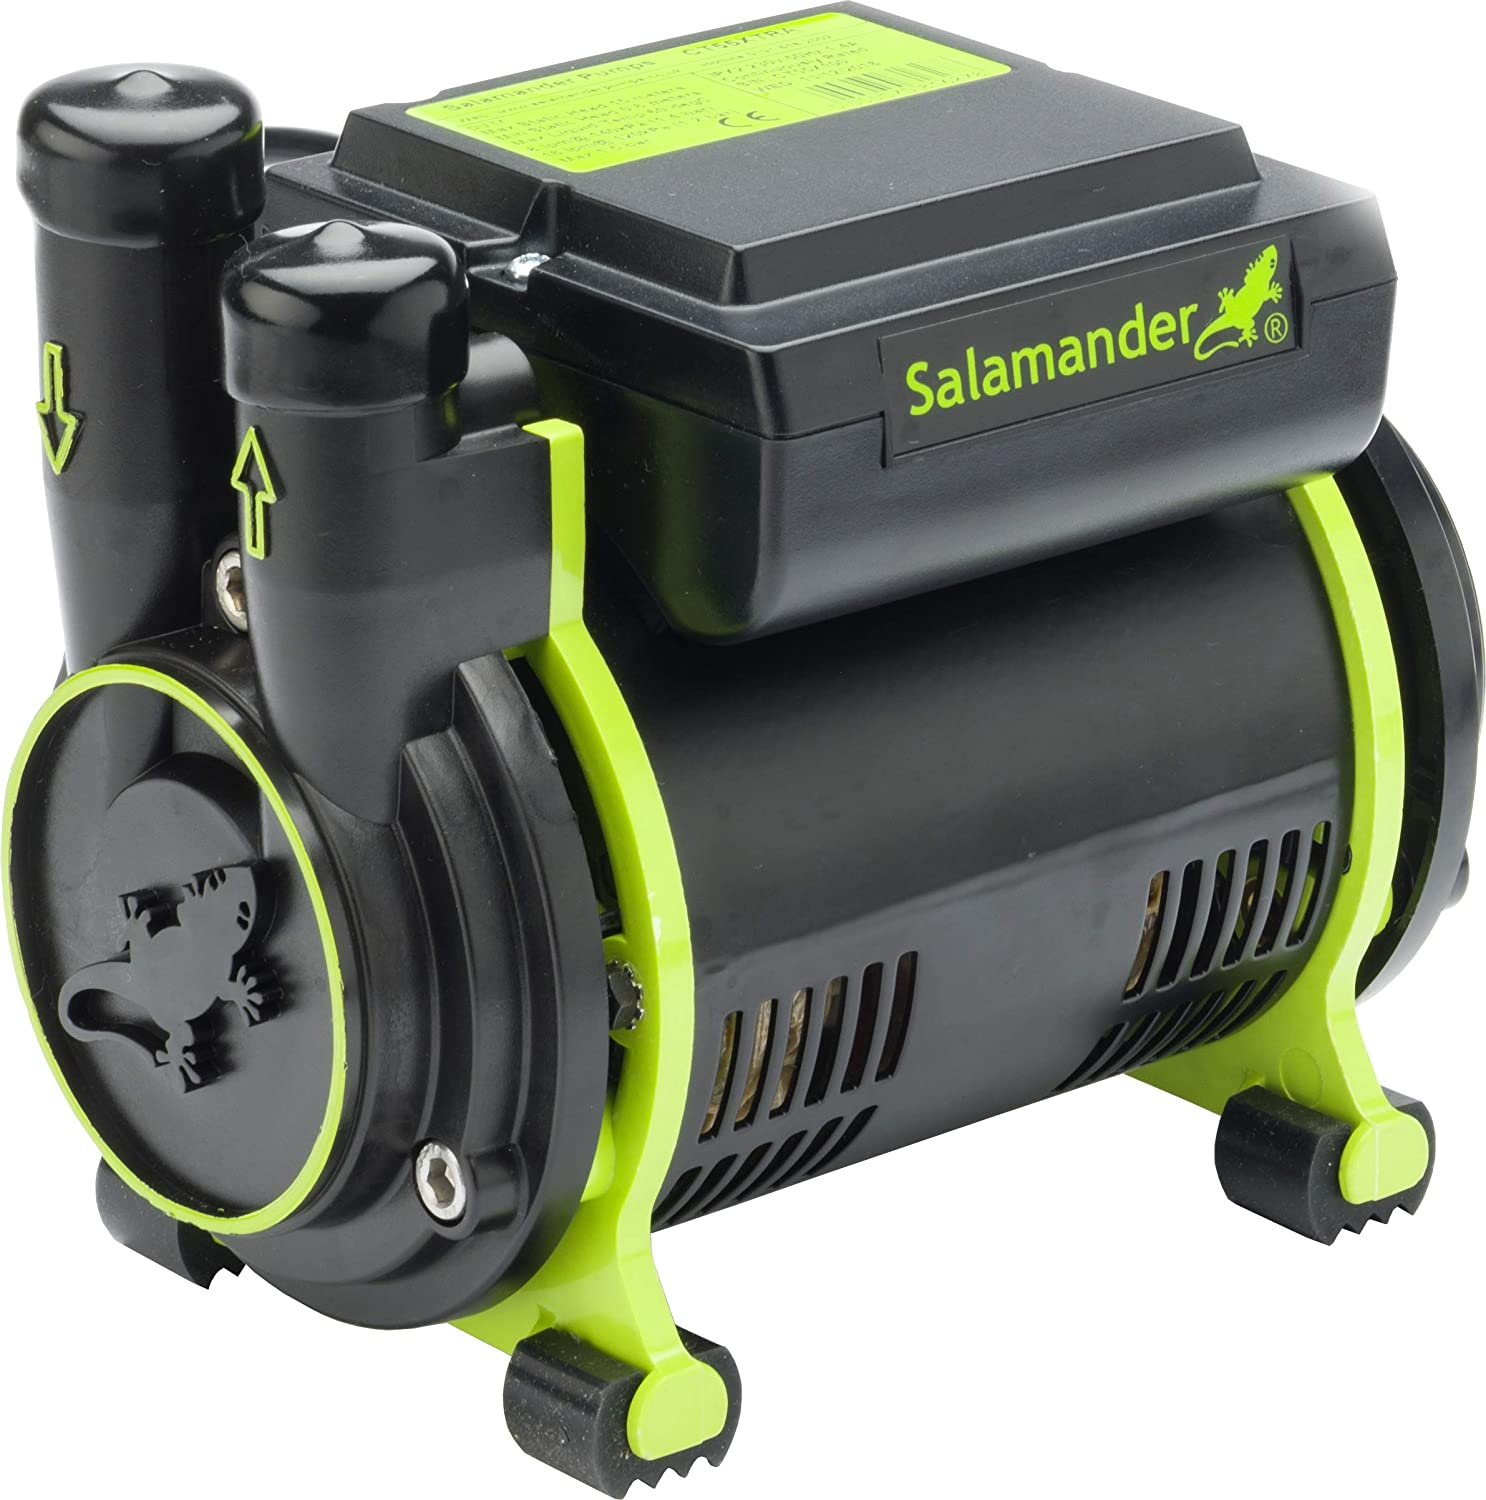 Salamander CT55 1.5 Bar Single Shower Pump 2 Year New CT55XTRA